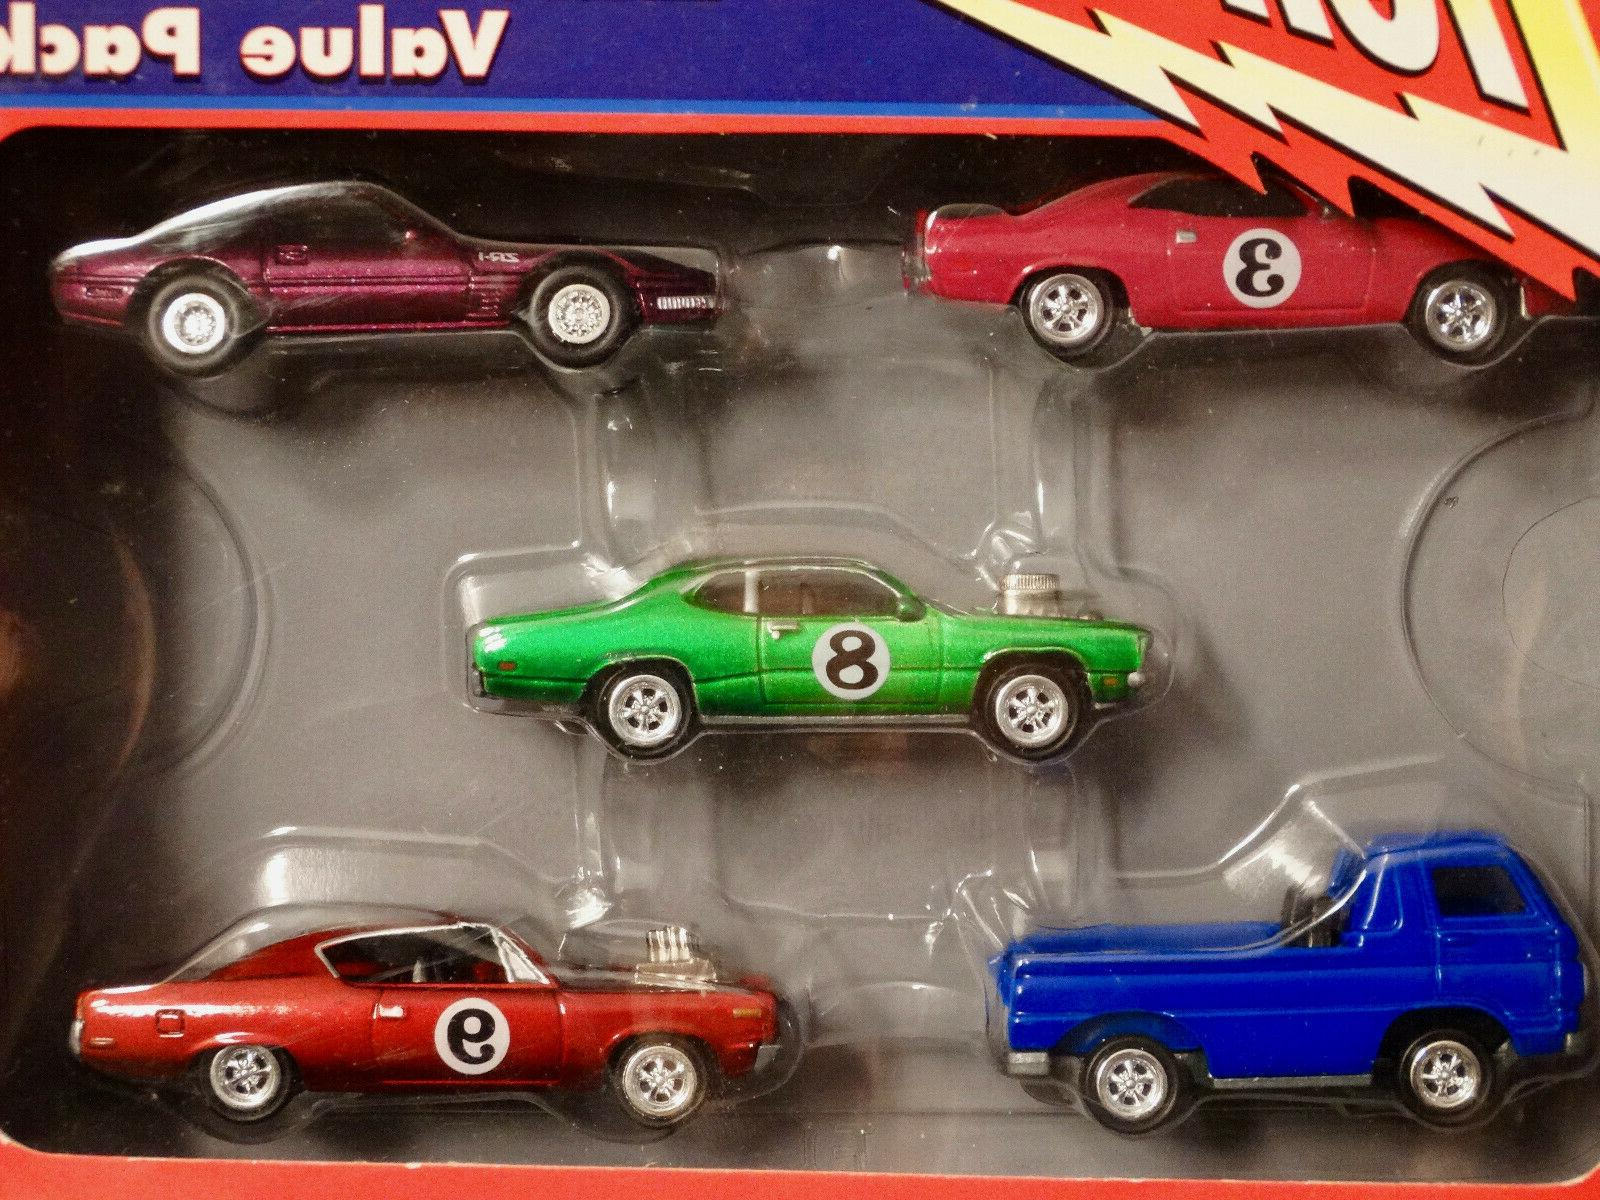 Johnny Exclusive 5 Car Value Pack item #35707